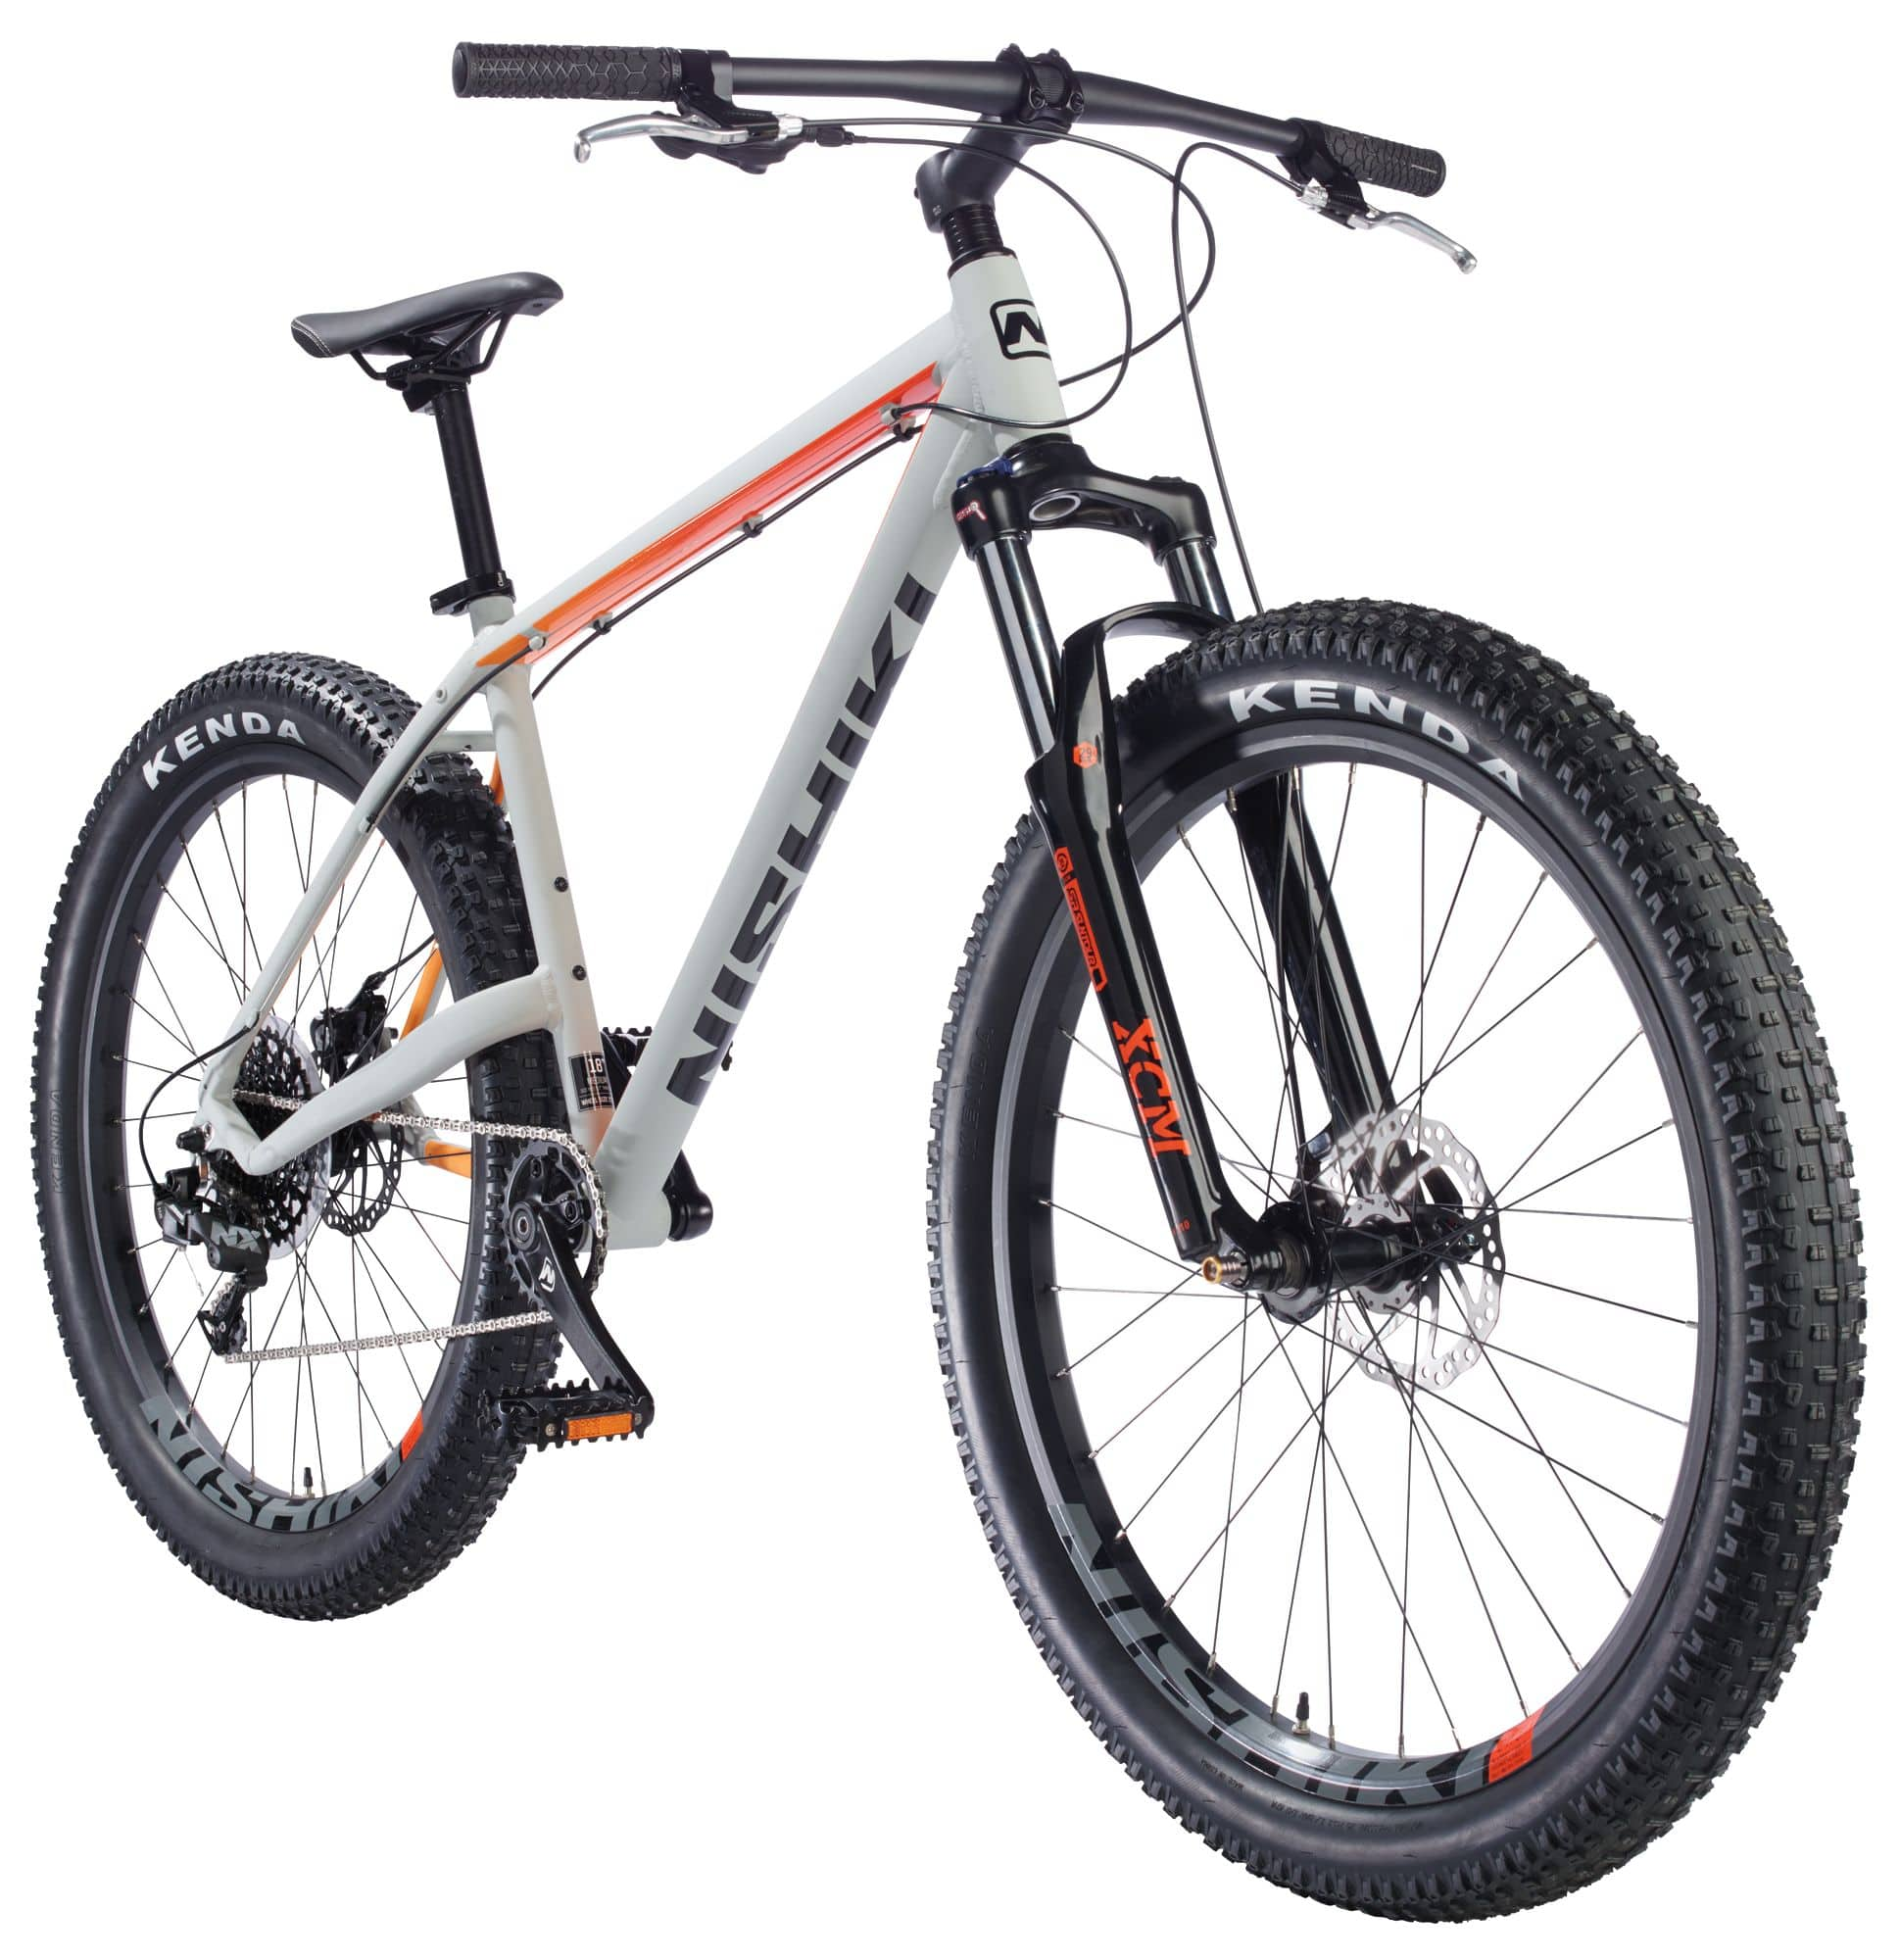 Mountain Bikes: Nishiki Colorado Comp $456 or GT Avalanche  $535 - Dicks